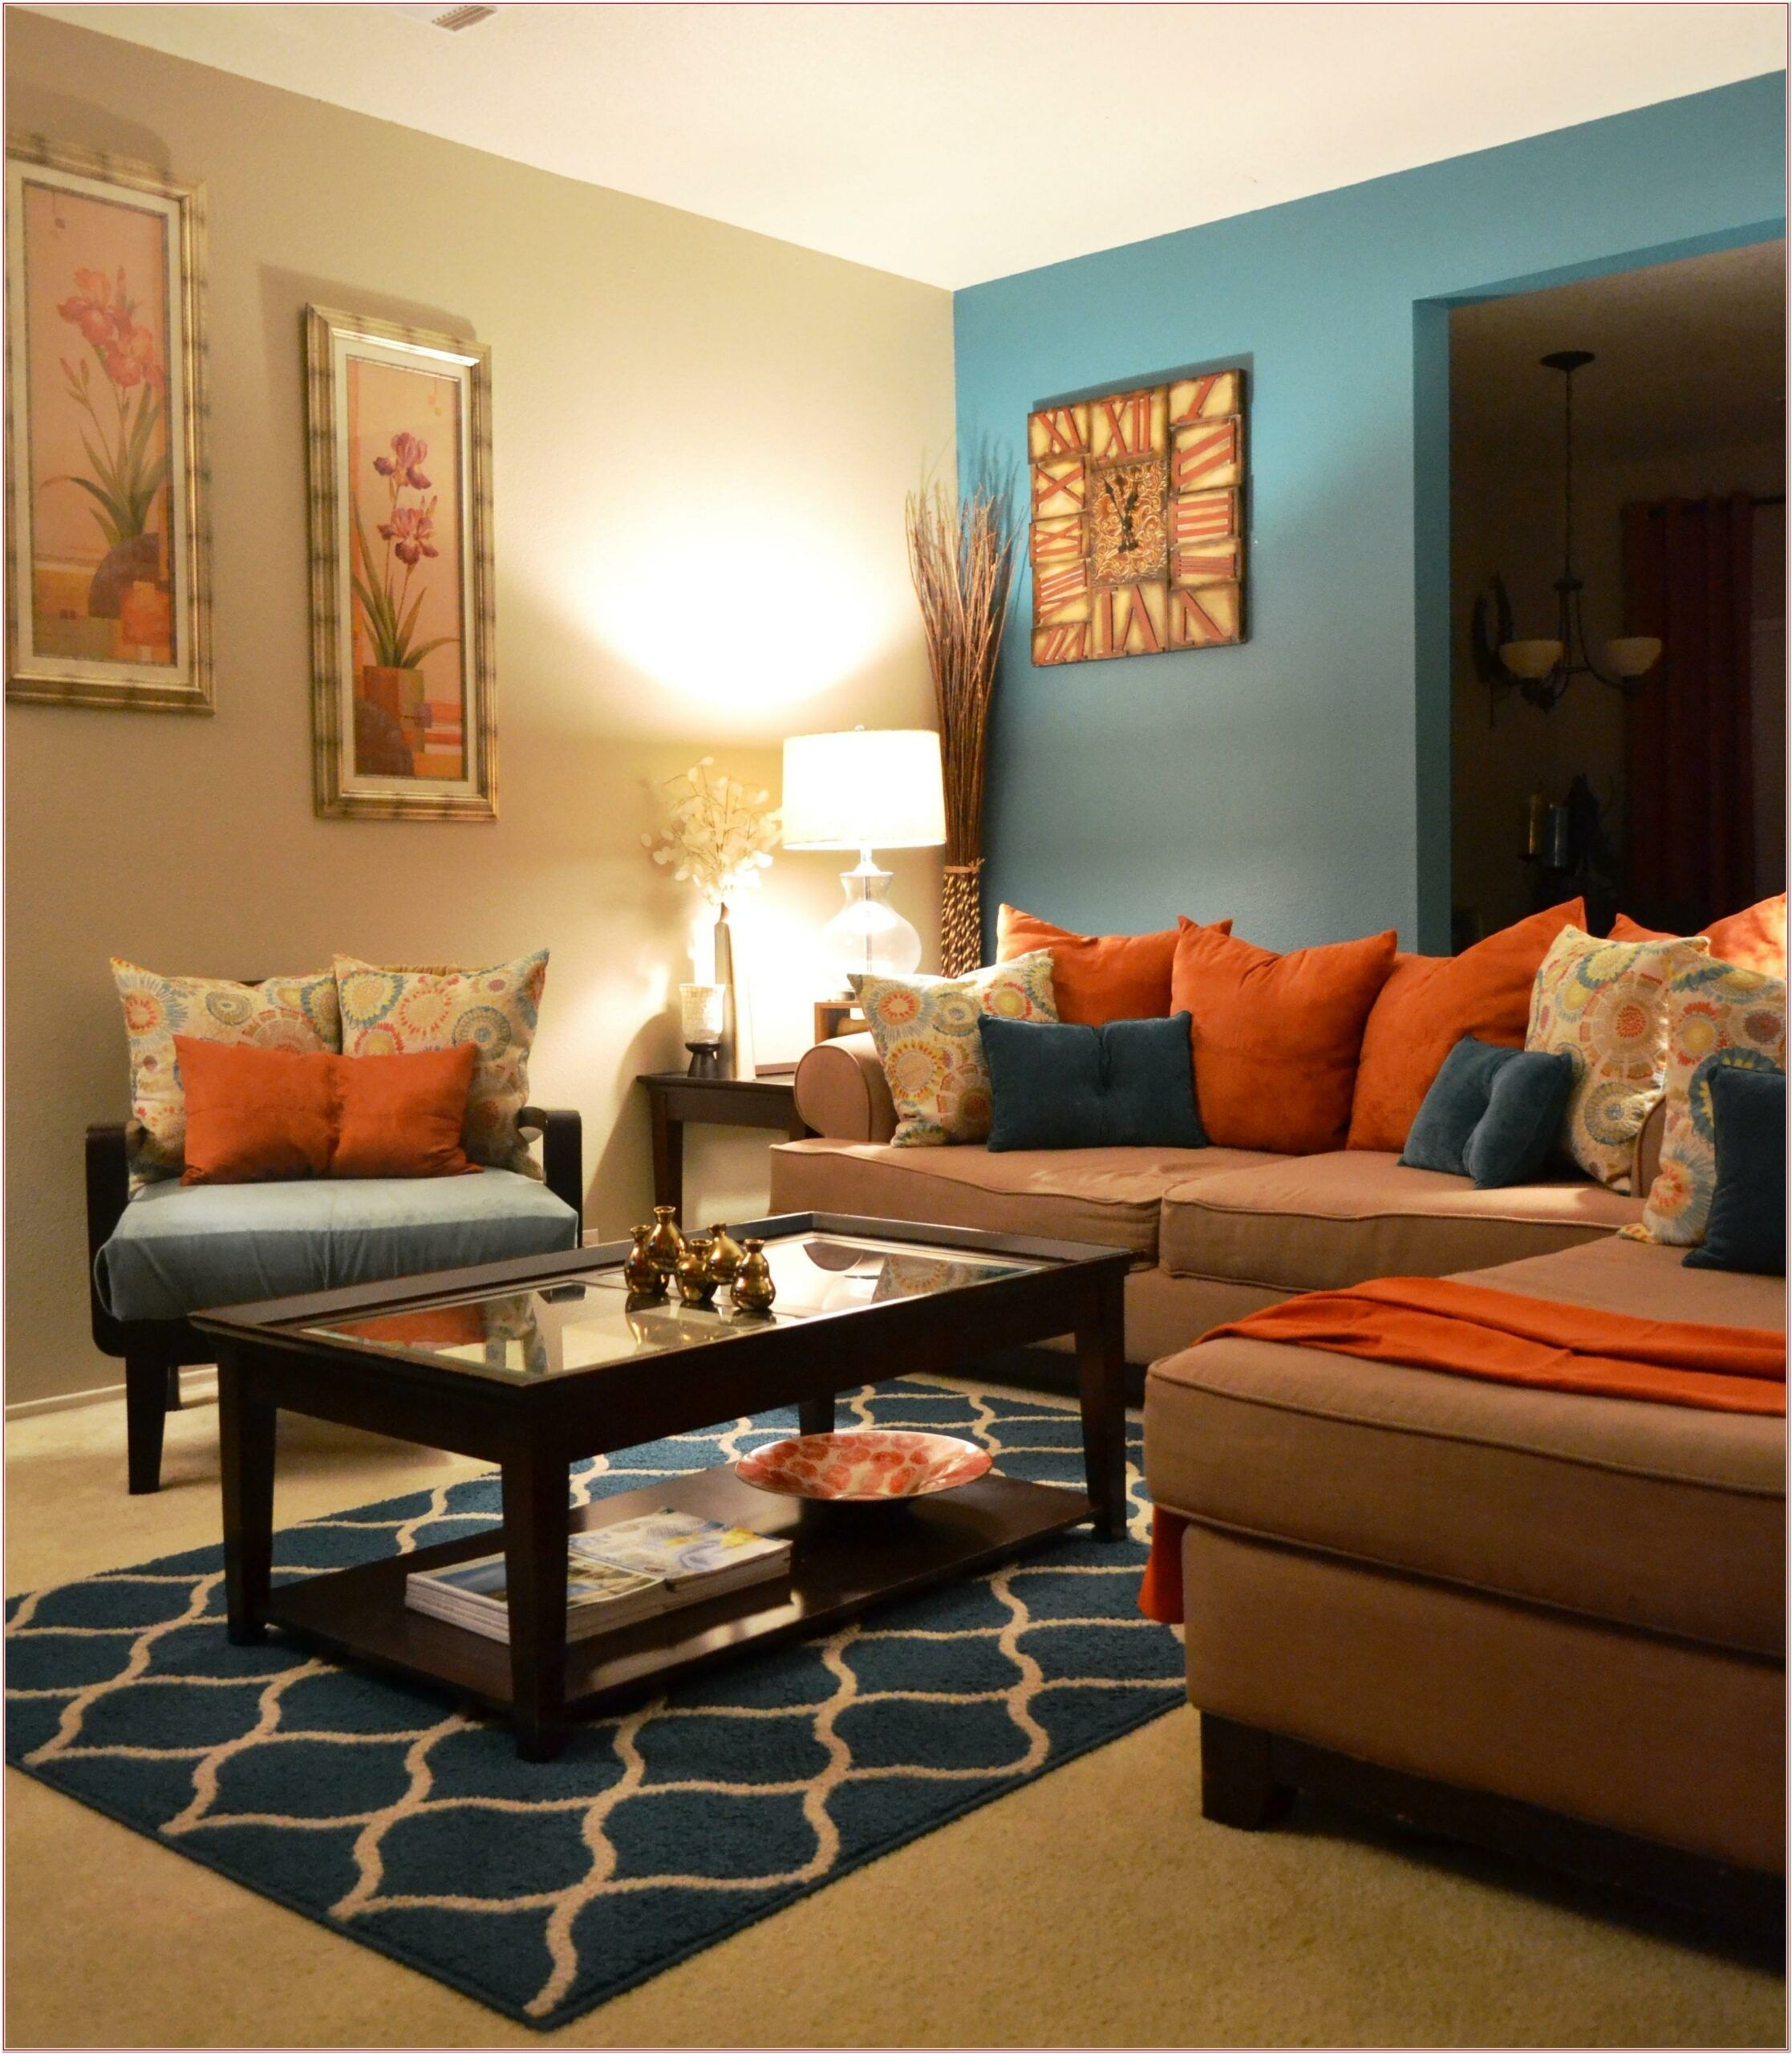 Teal And Orange Living Room Decor Ideas by Steven Wright ...